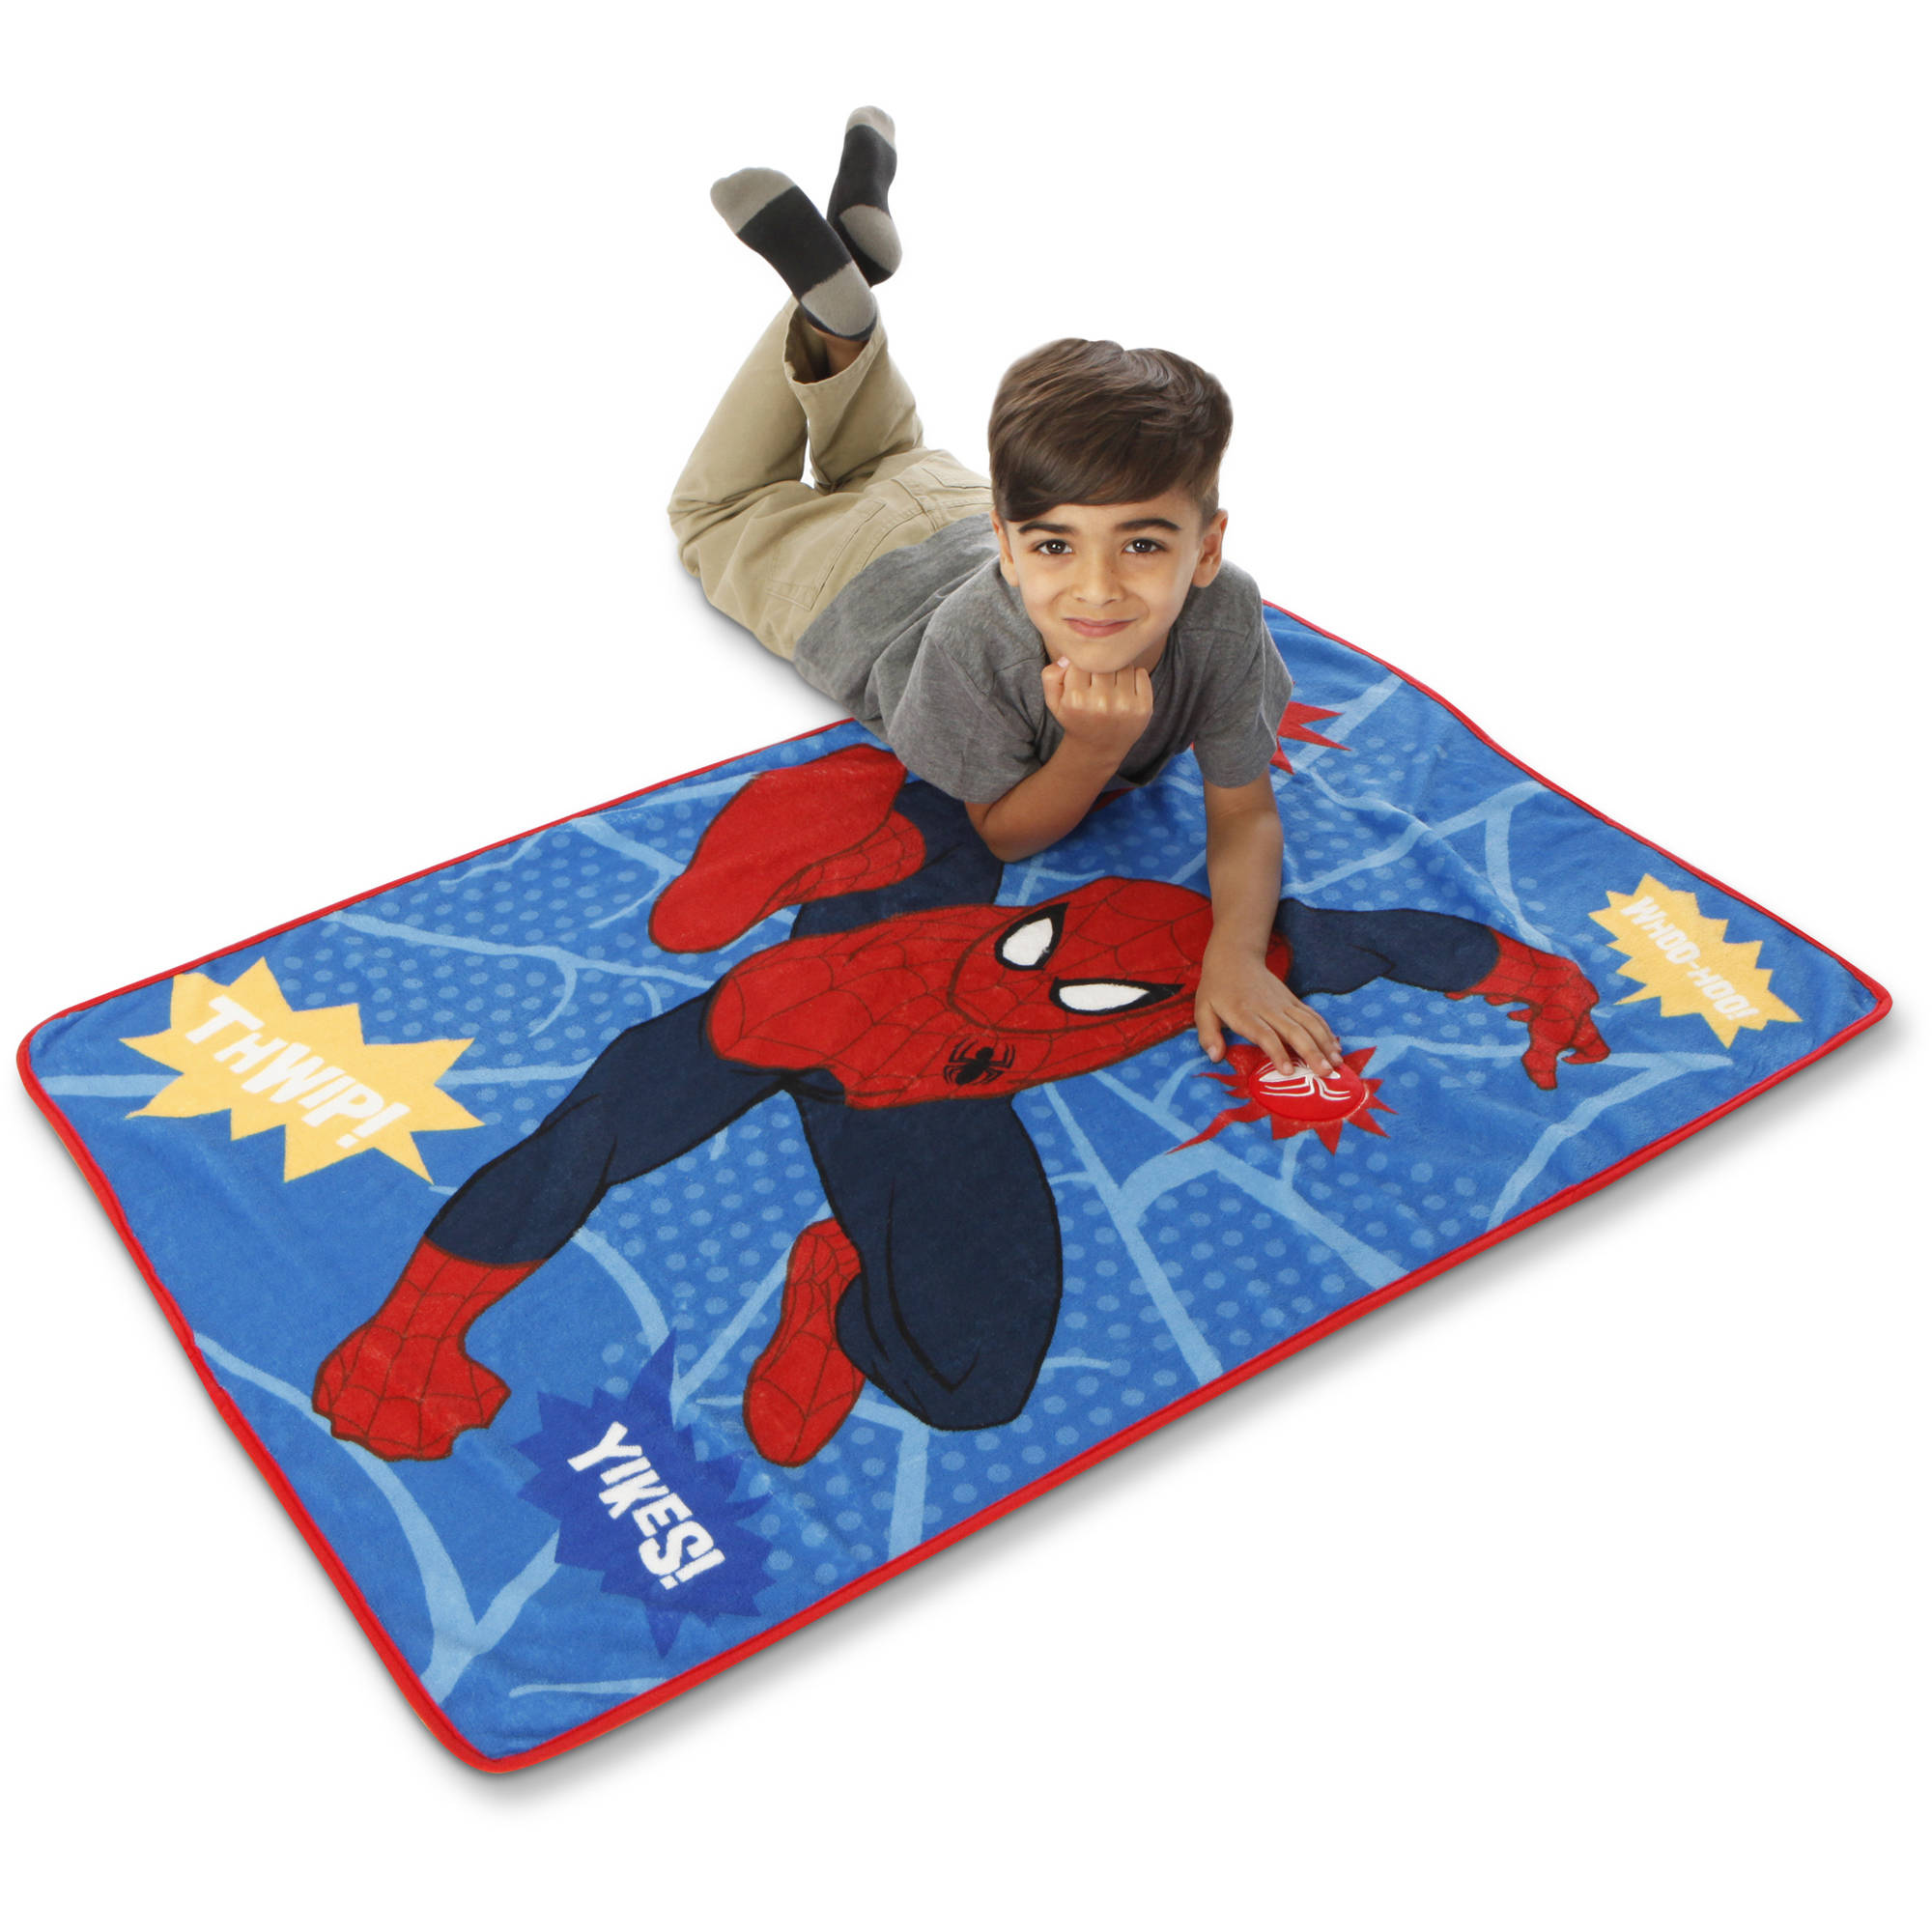 Marvel's Spider-Man Toddler Blanket with Sound